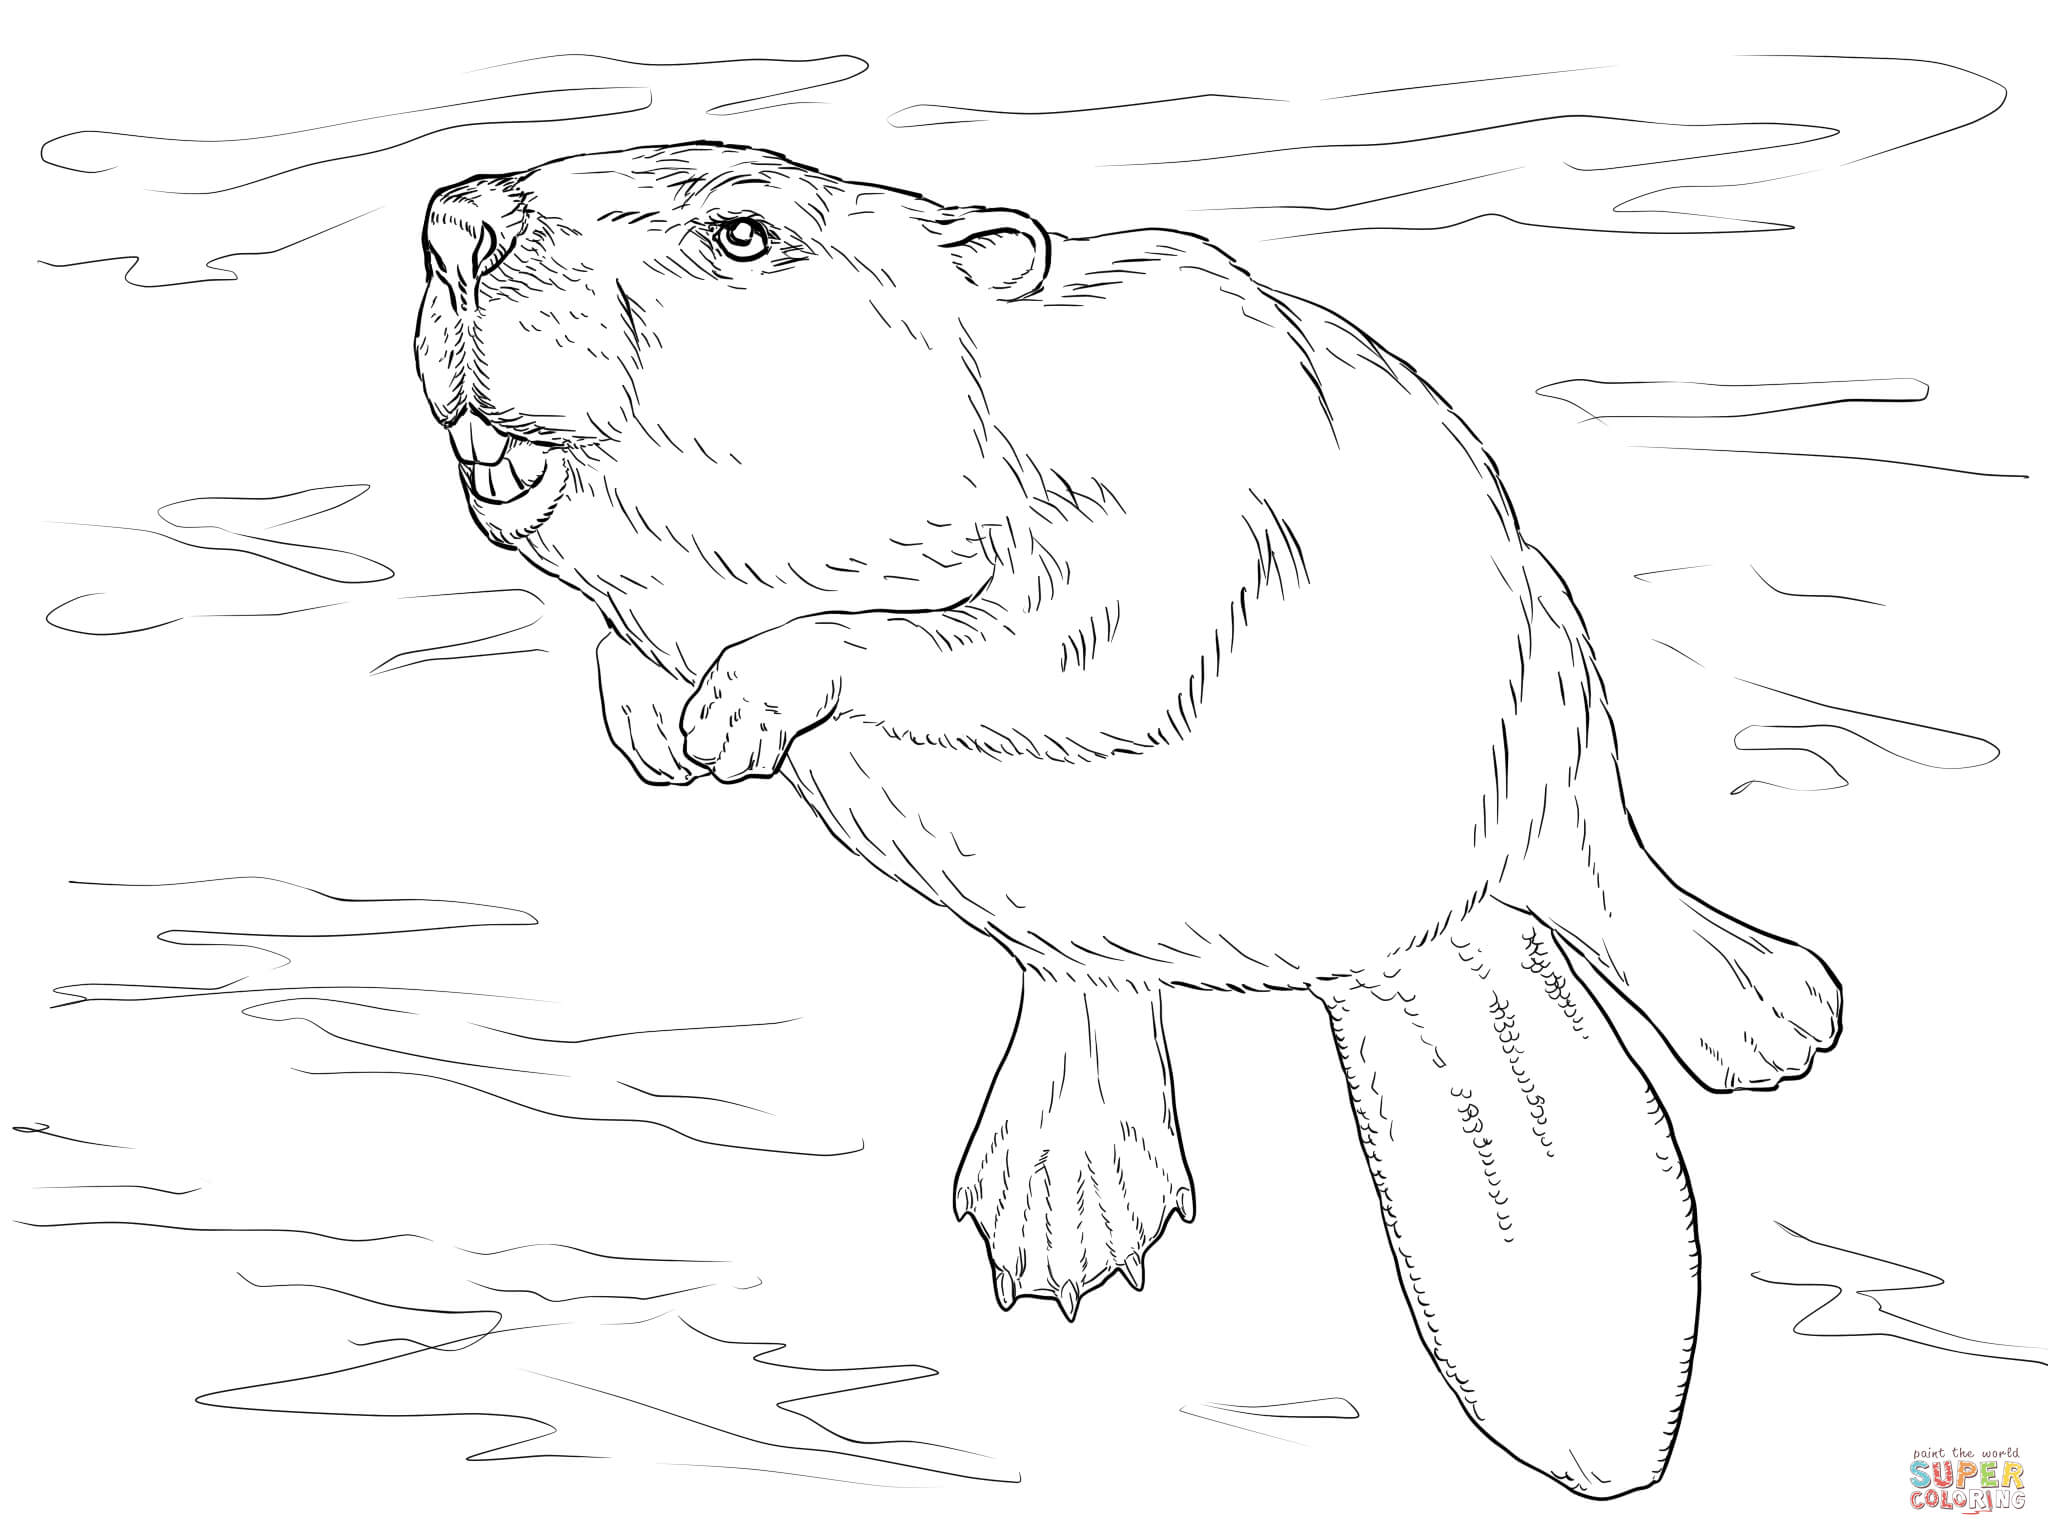 how to draw a realistic beaver beaver drawing pencil sketch colorful realistic art realistic beaver to draw how a